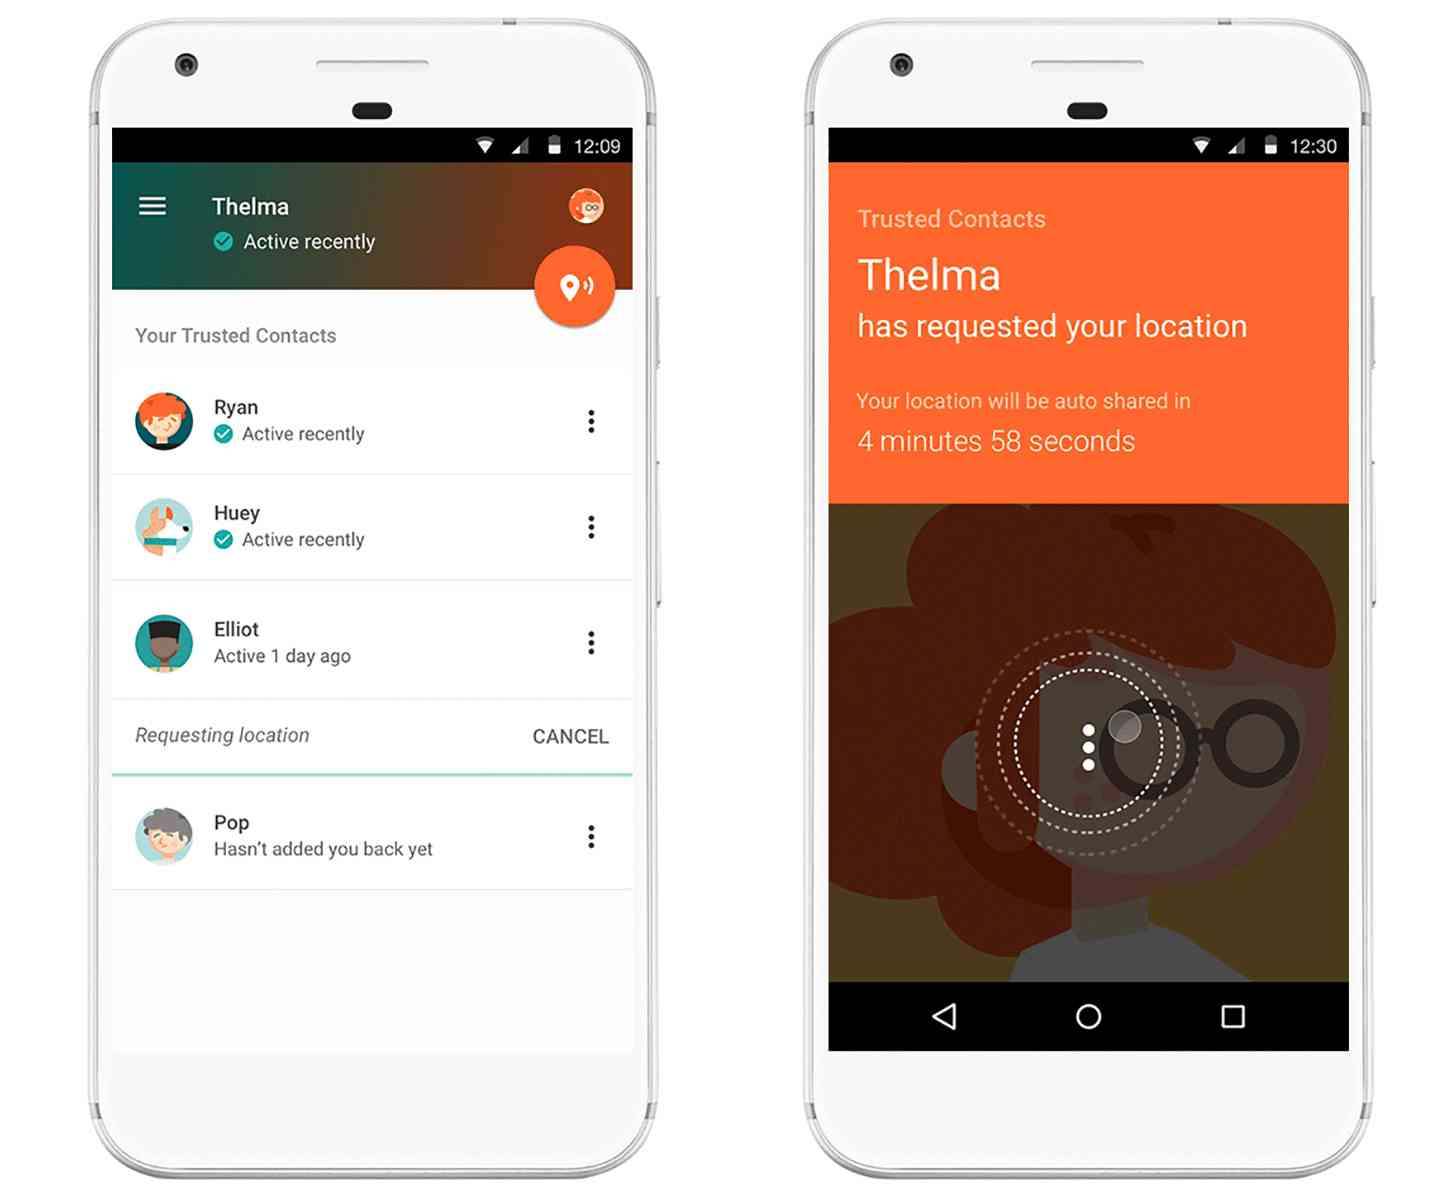 Google Trusted Contacts Android app